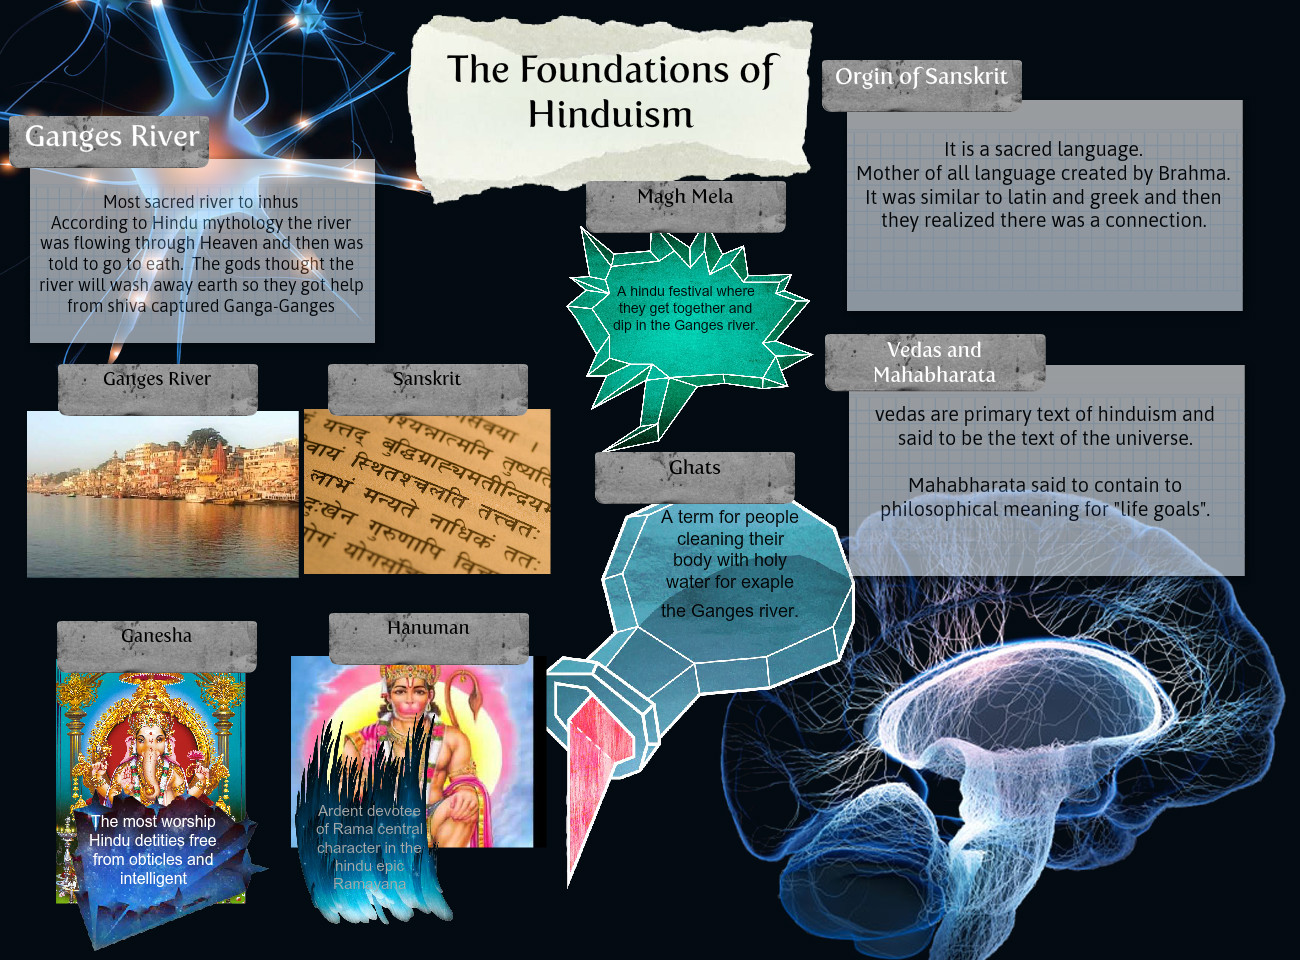 The Foundation of Hinduism